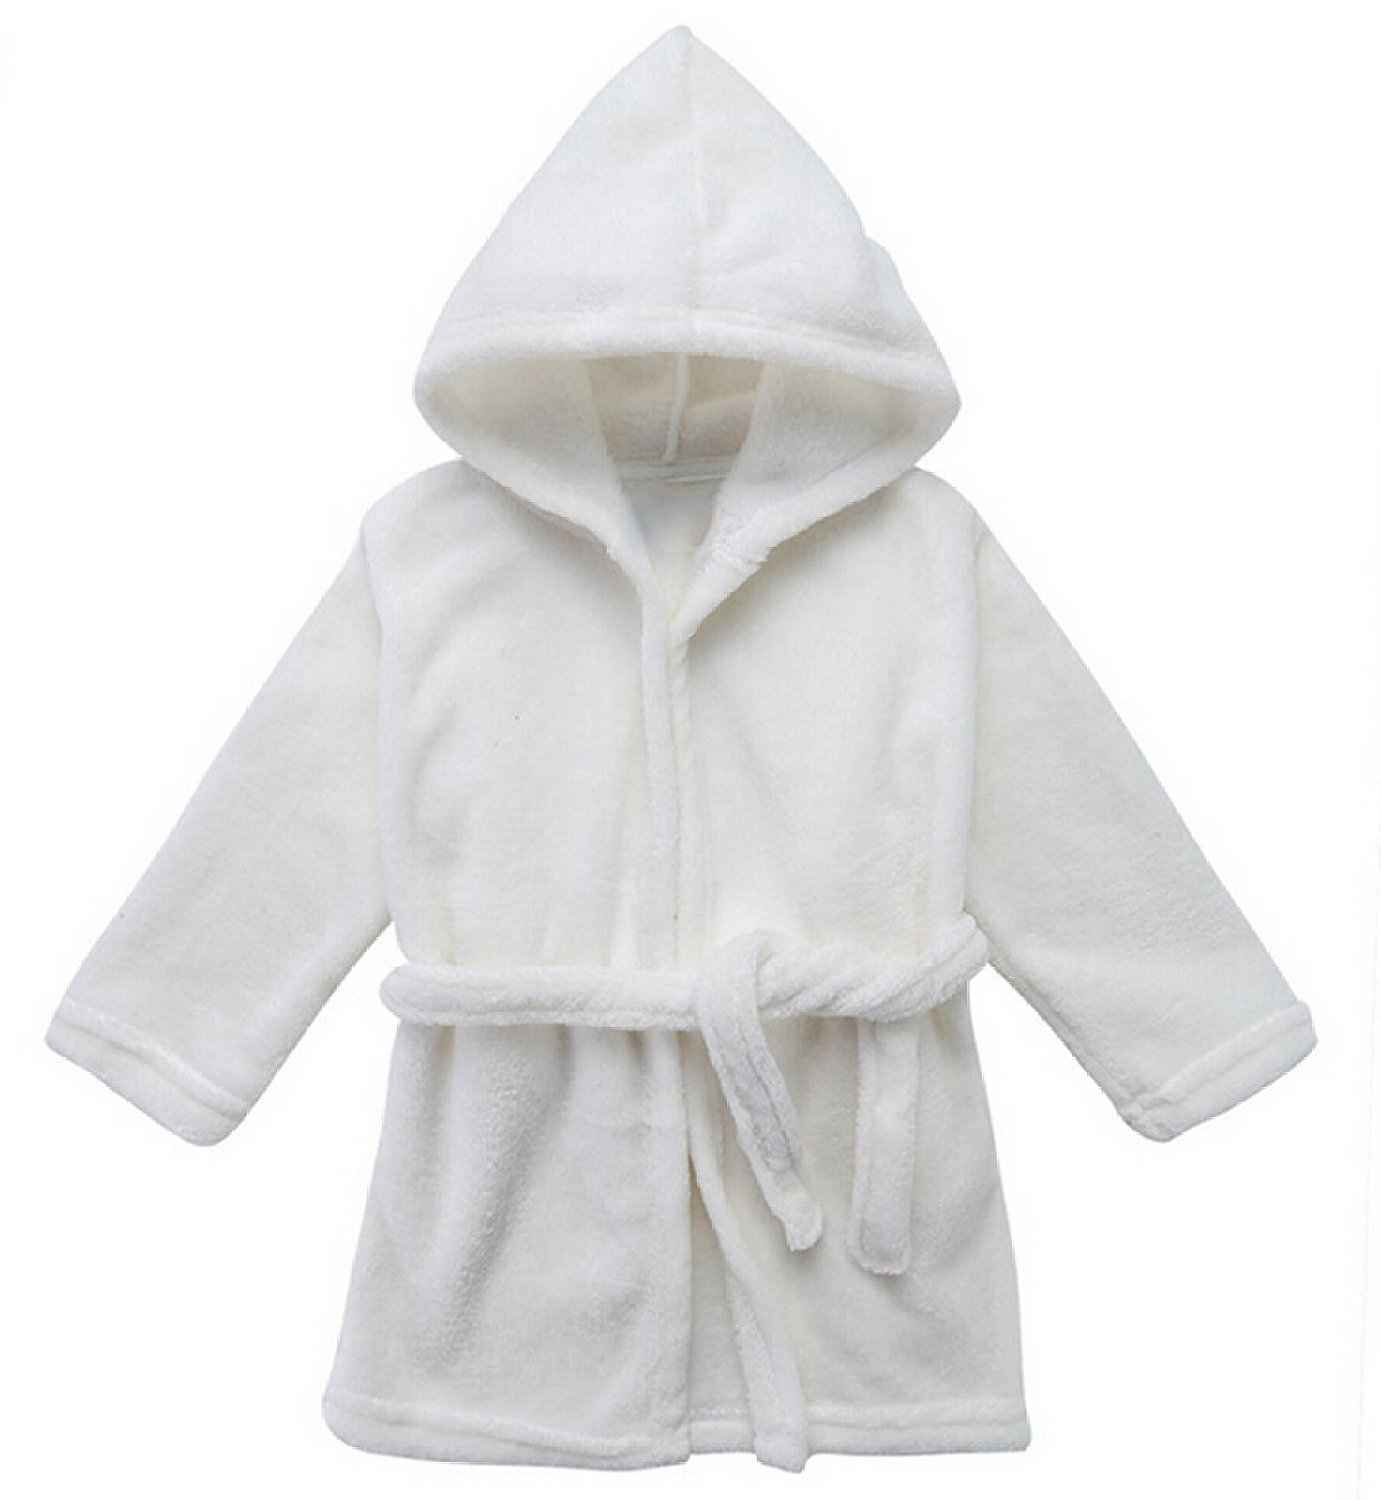 LOSORN ZPY Toddler Unisex Baby Robe Hooded Fleece Bathrobe Towel Kids 9-36 Month LZ-TZ-31